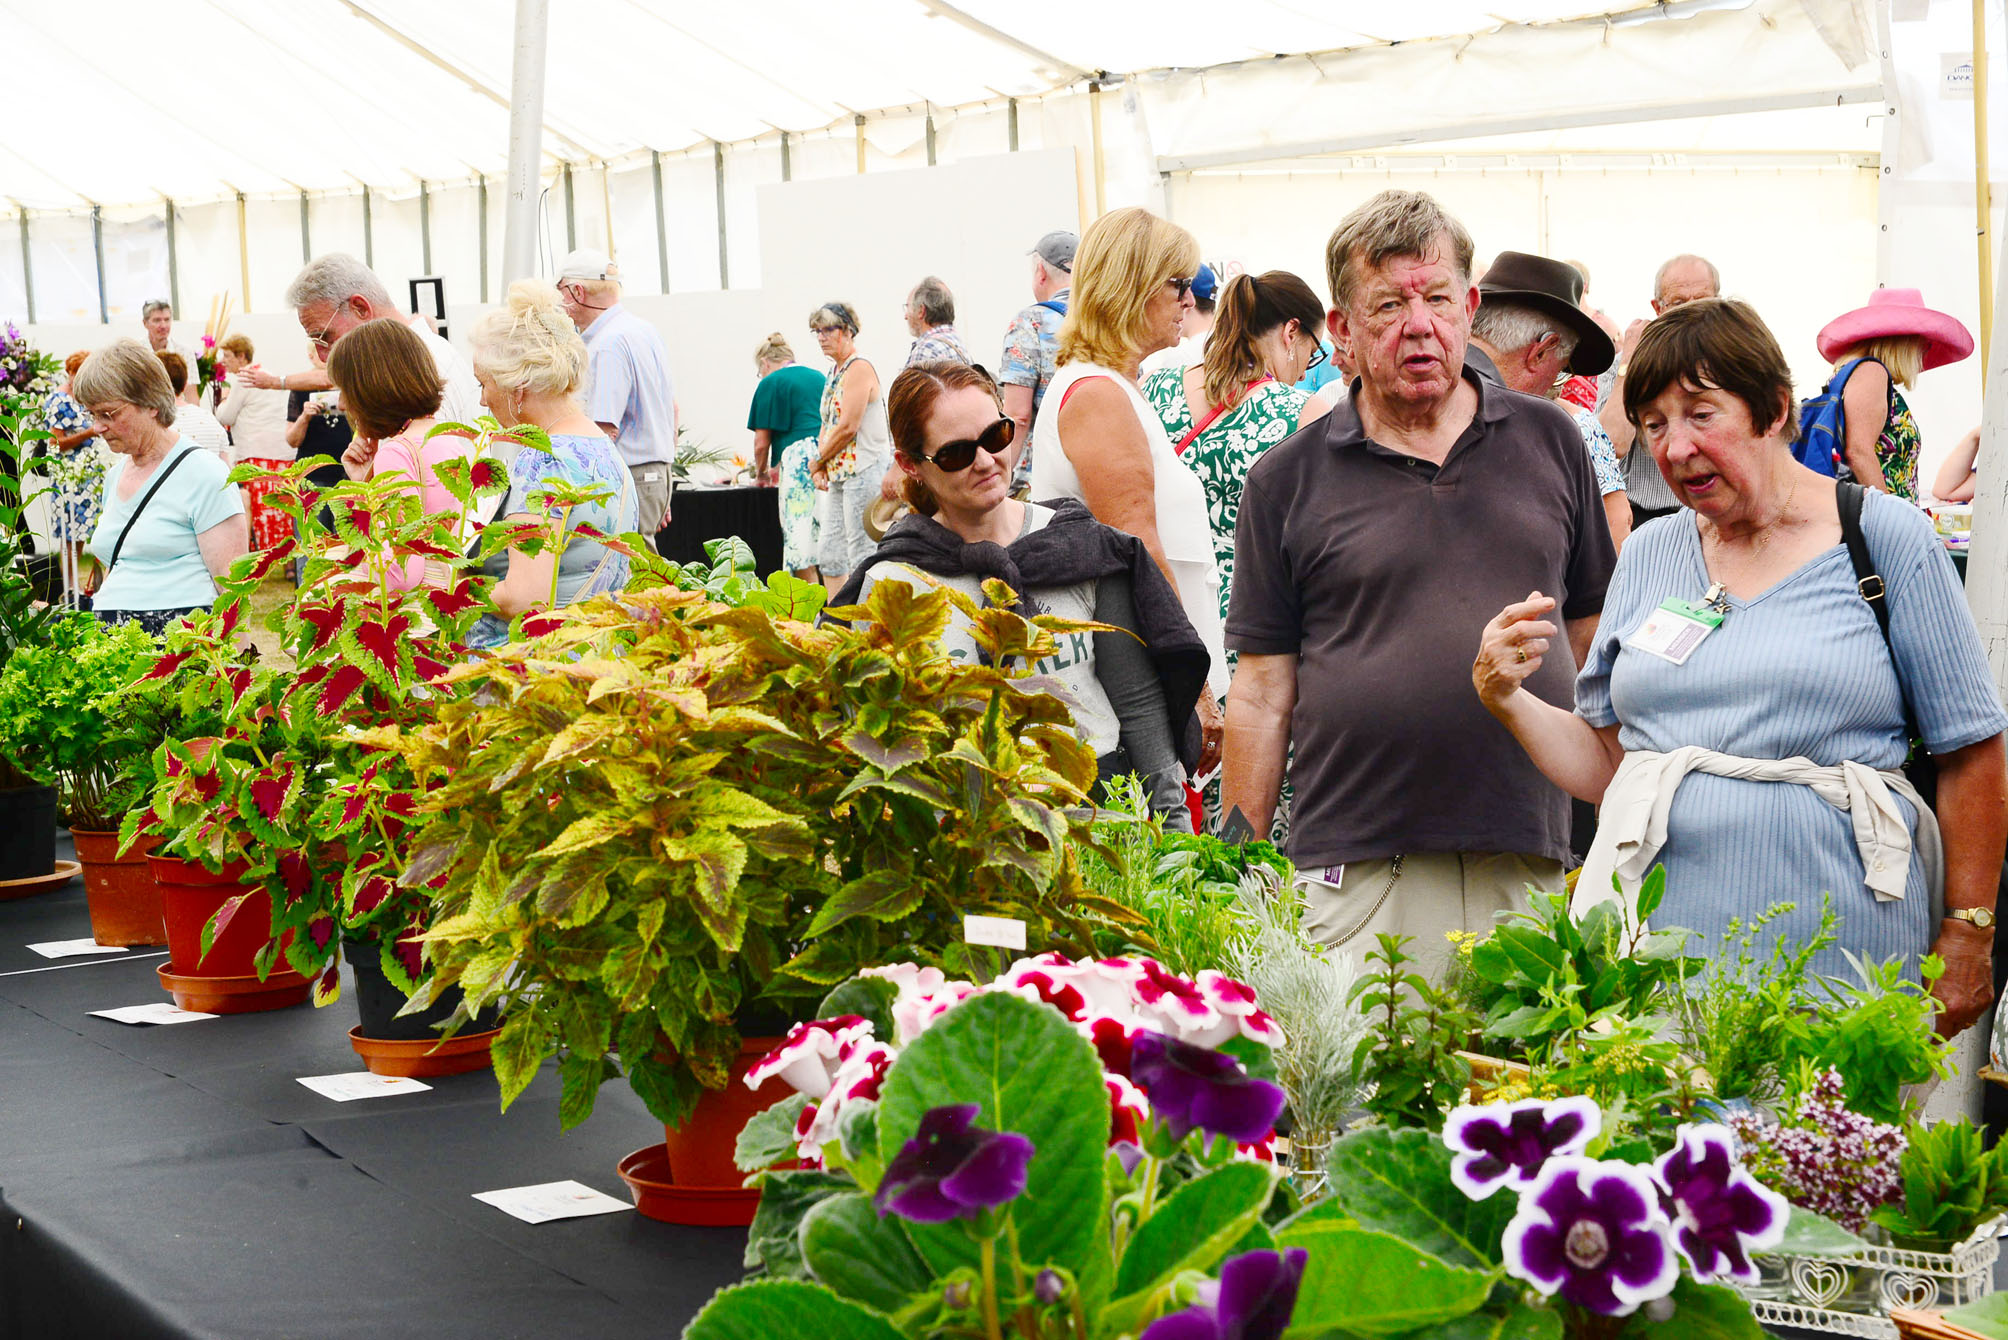 VISITORS: Taunton Flower Show attracts thousands each year